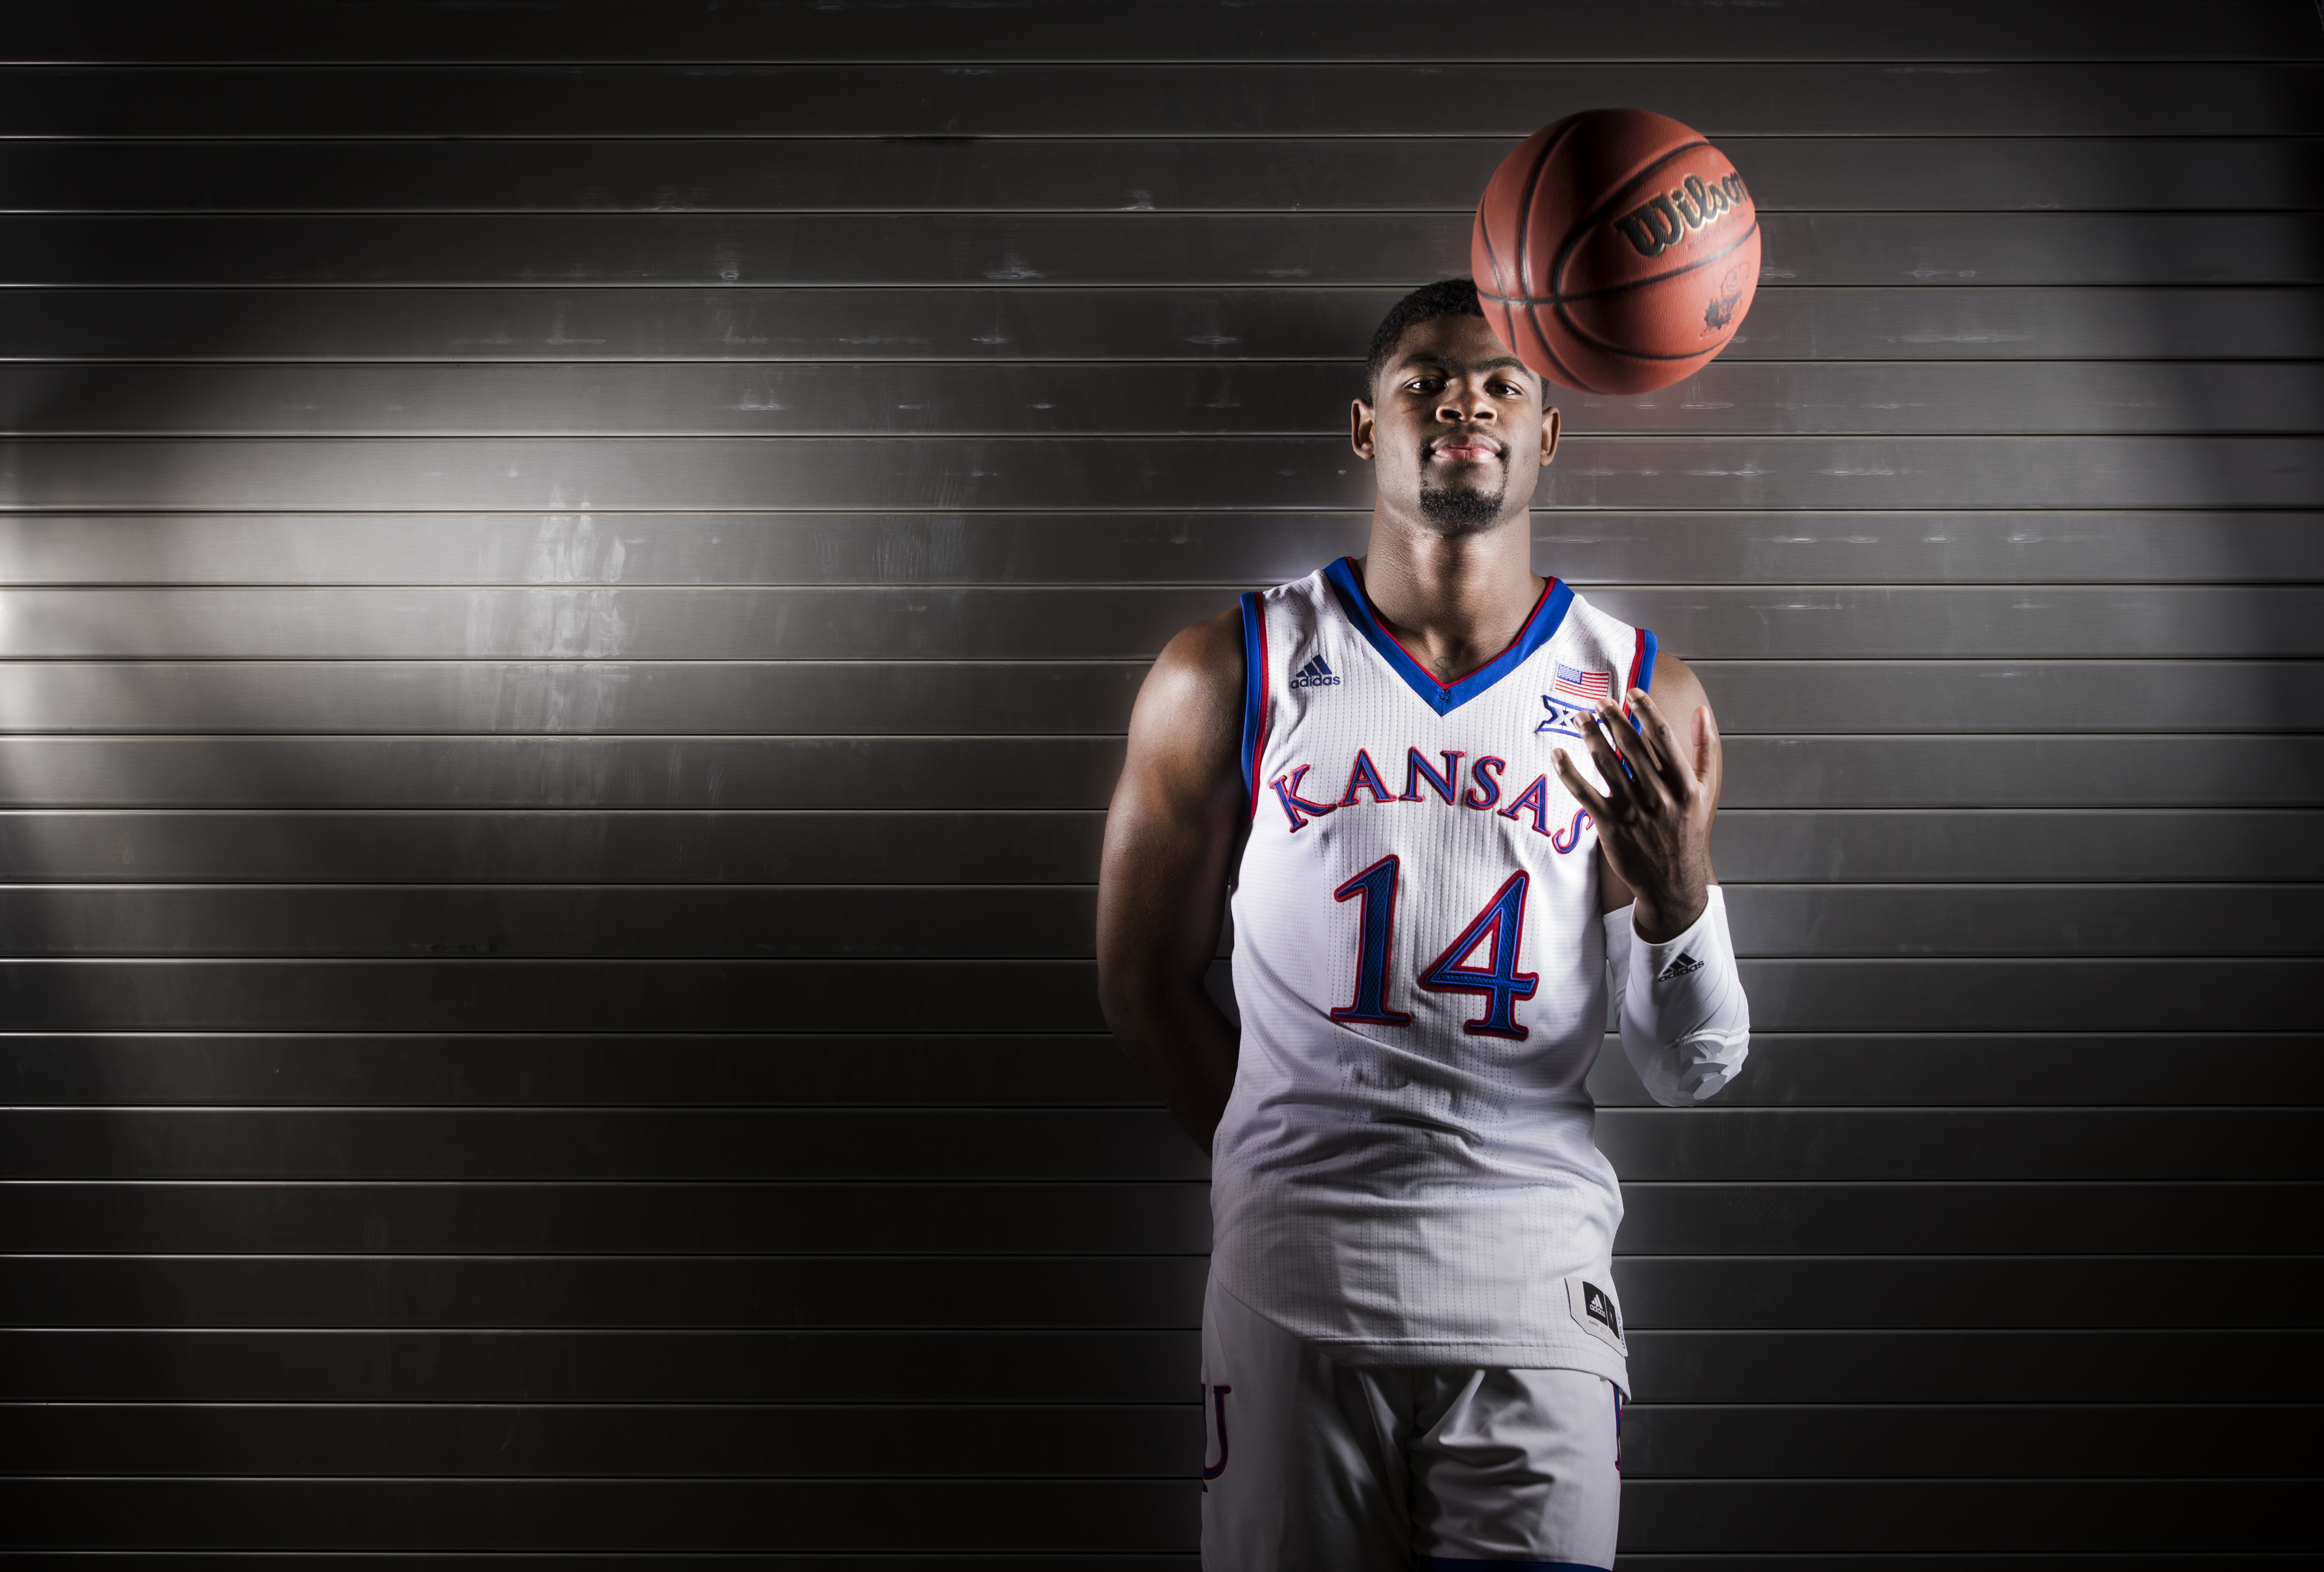 cbdba0ad97c KU Men's Basketball | News, Sports, Jobs - Lawrence Journal-World ...